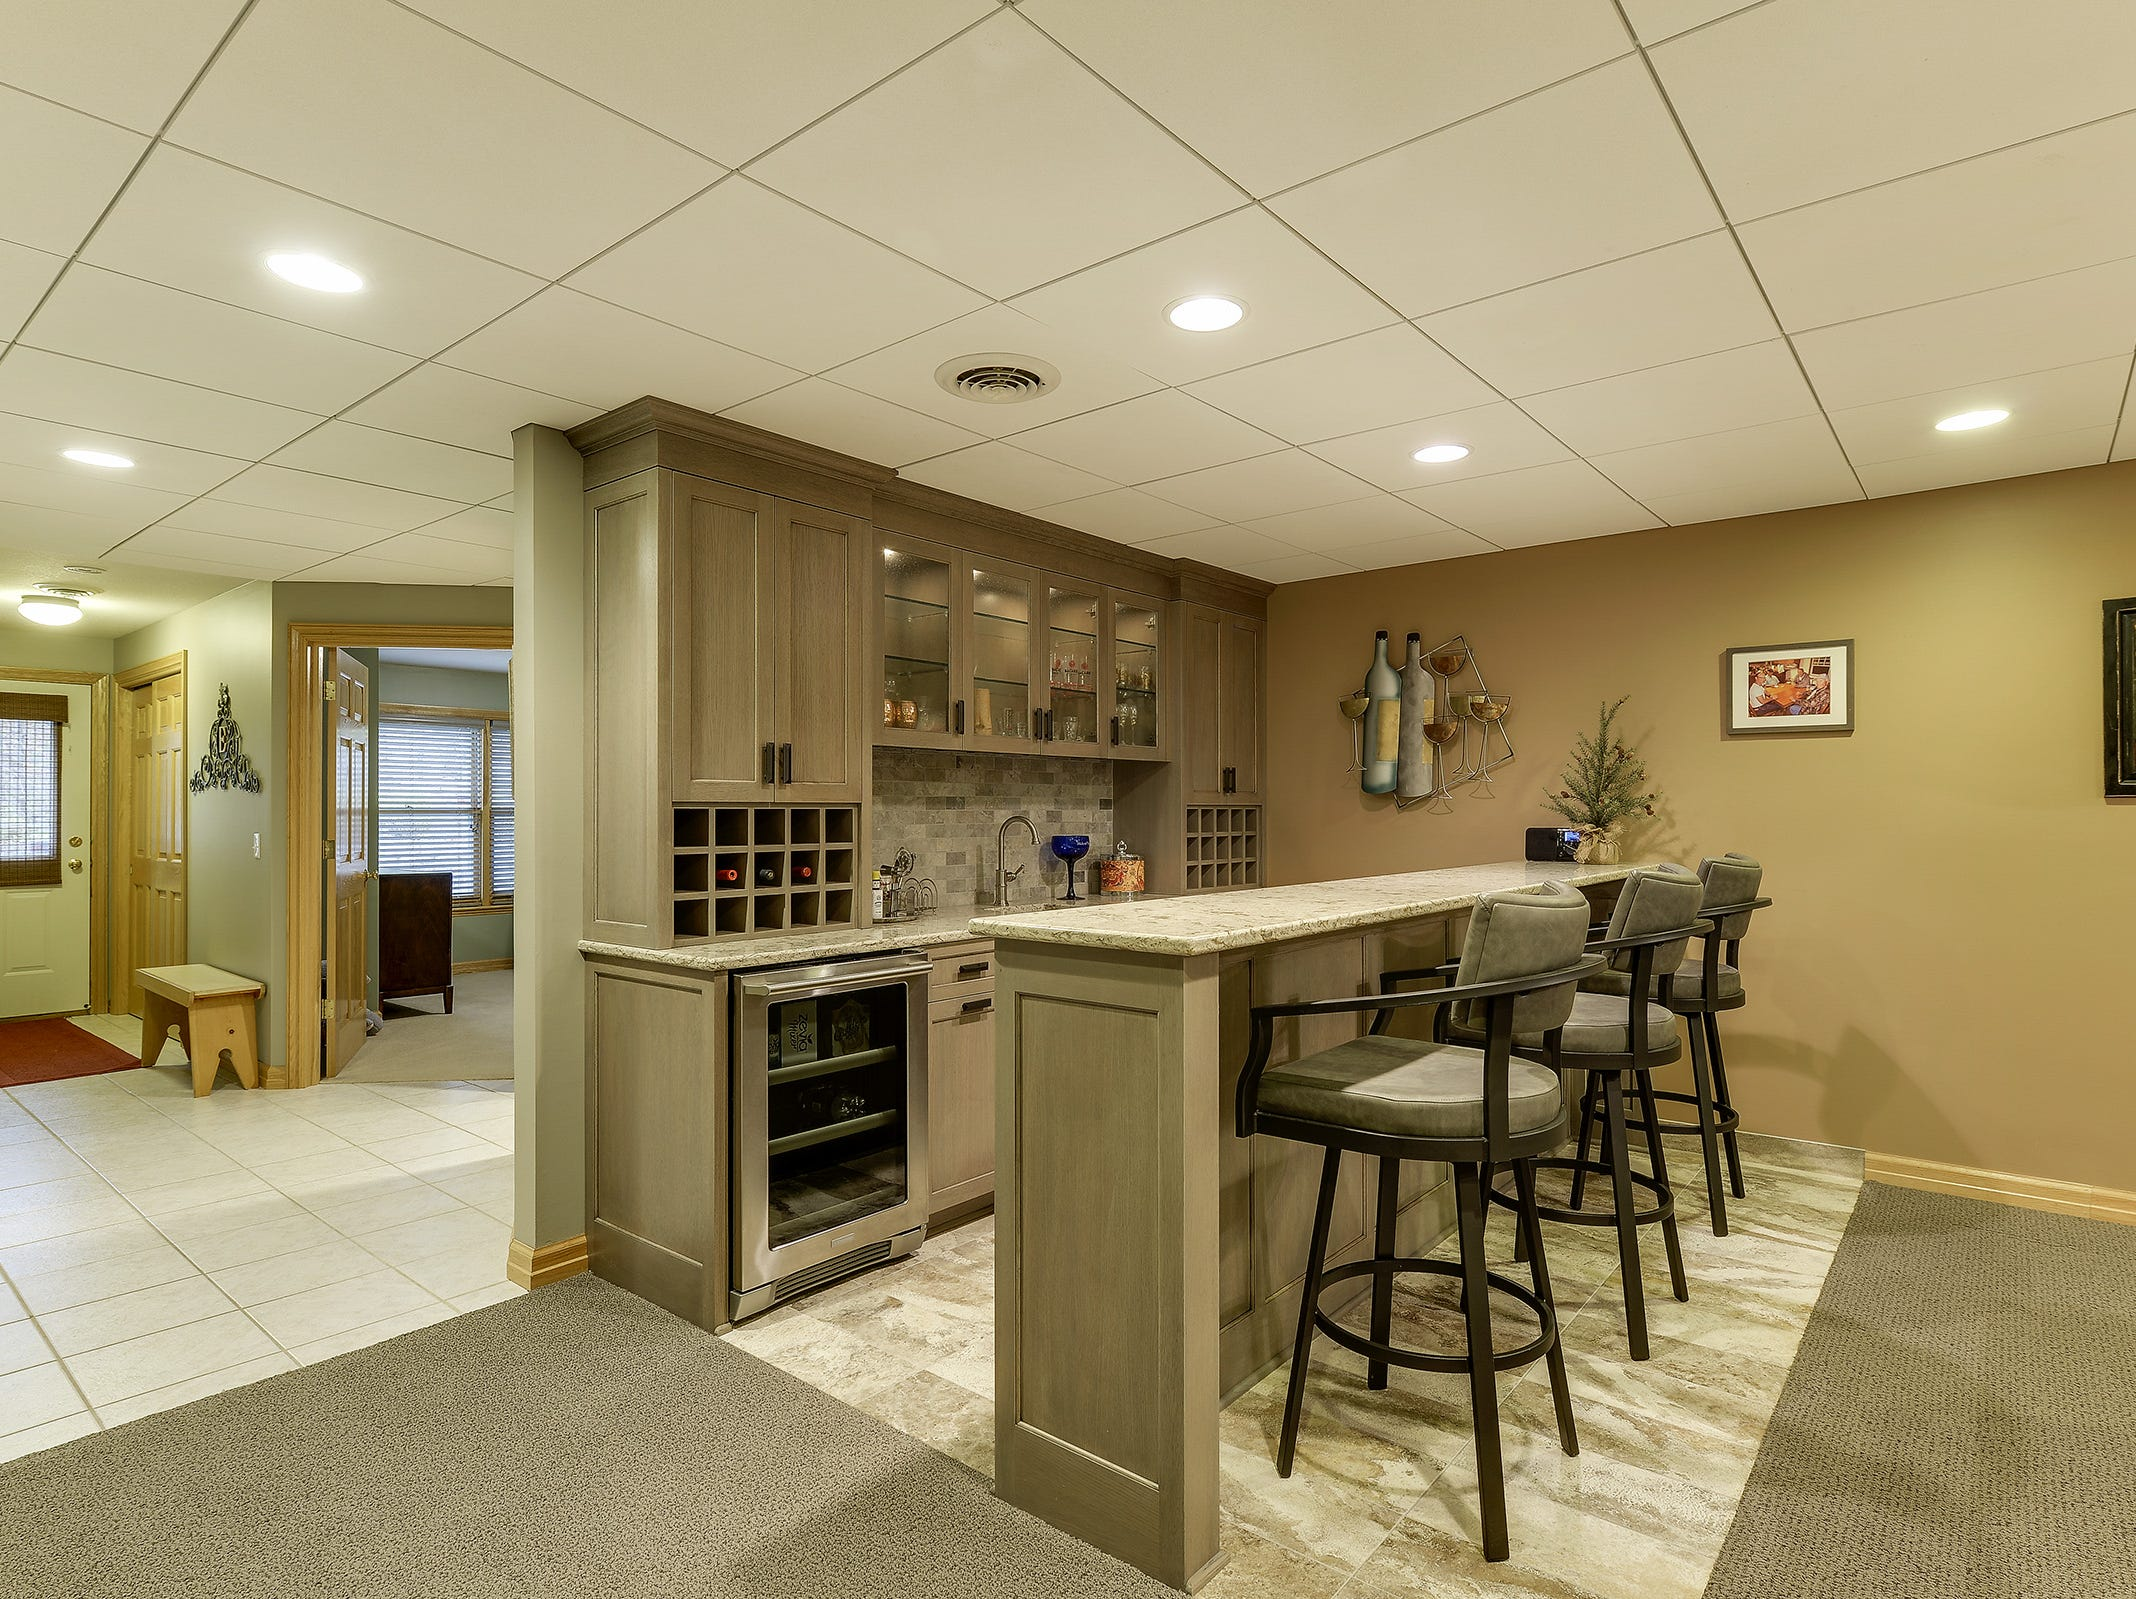 The wet bar has space for barstool seating and has a wine fridge along with a generous amount of storage and cabinetry.